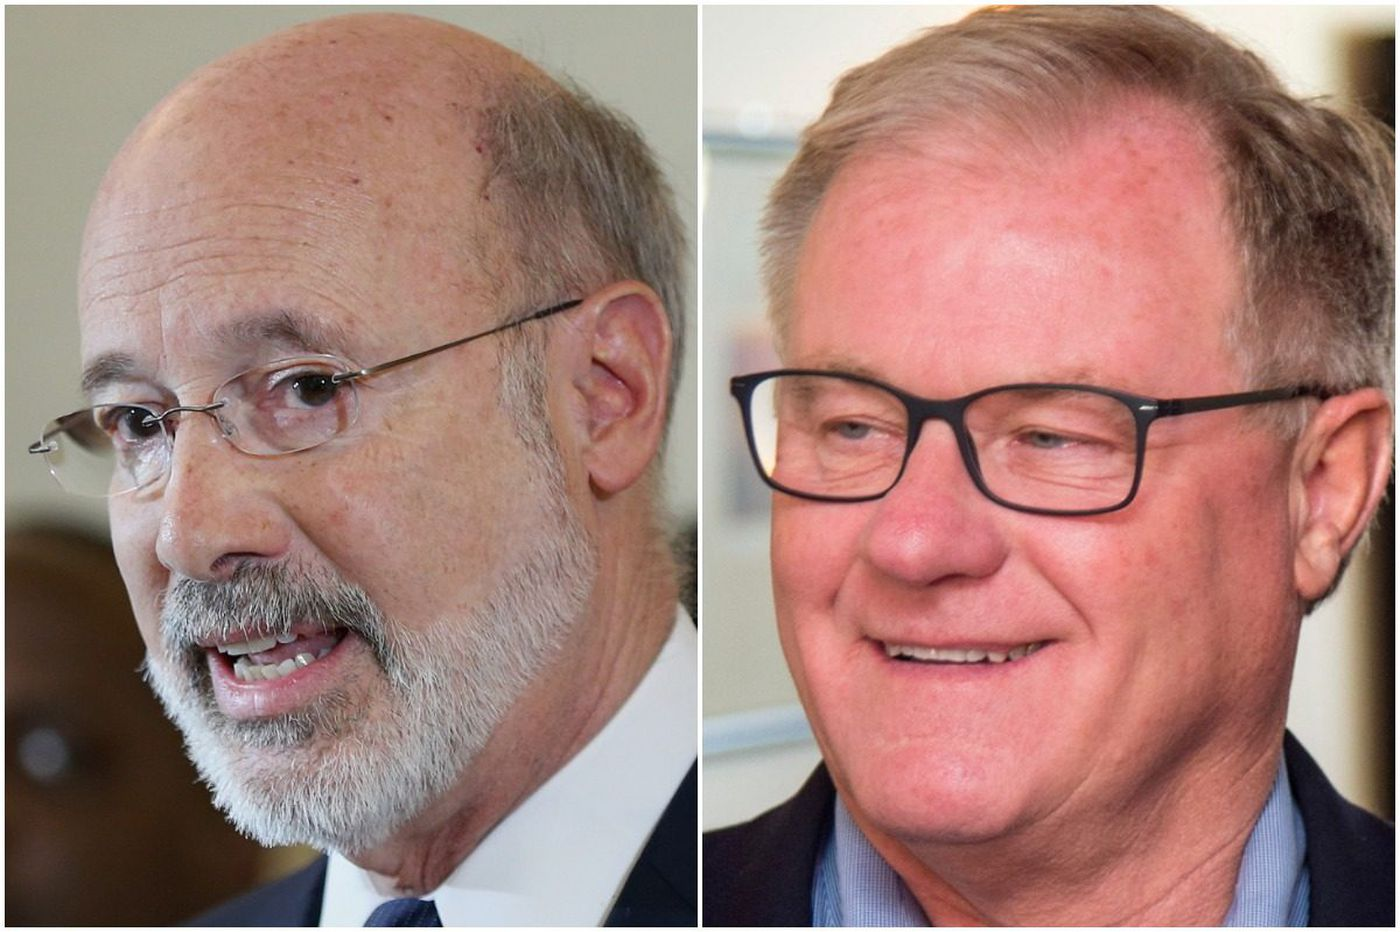 Pennsylvania voters face a governor's race with starkly different candidates | John Baer